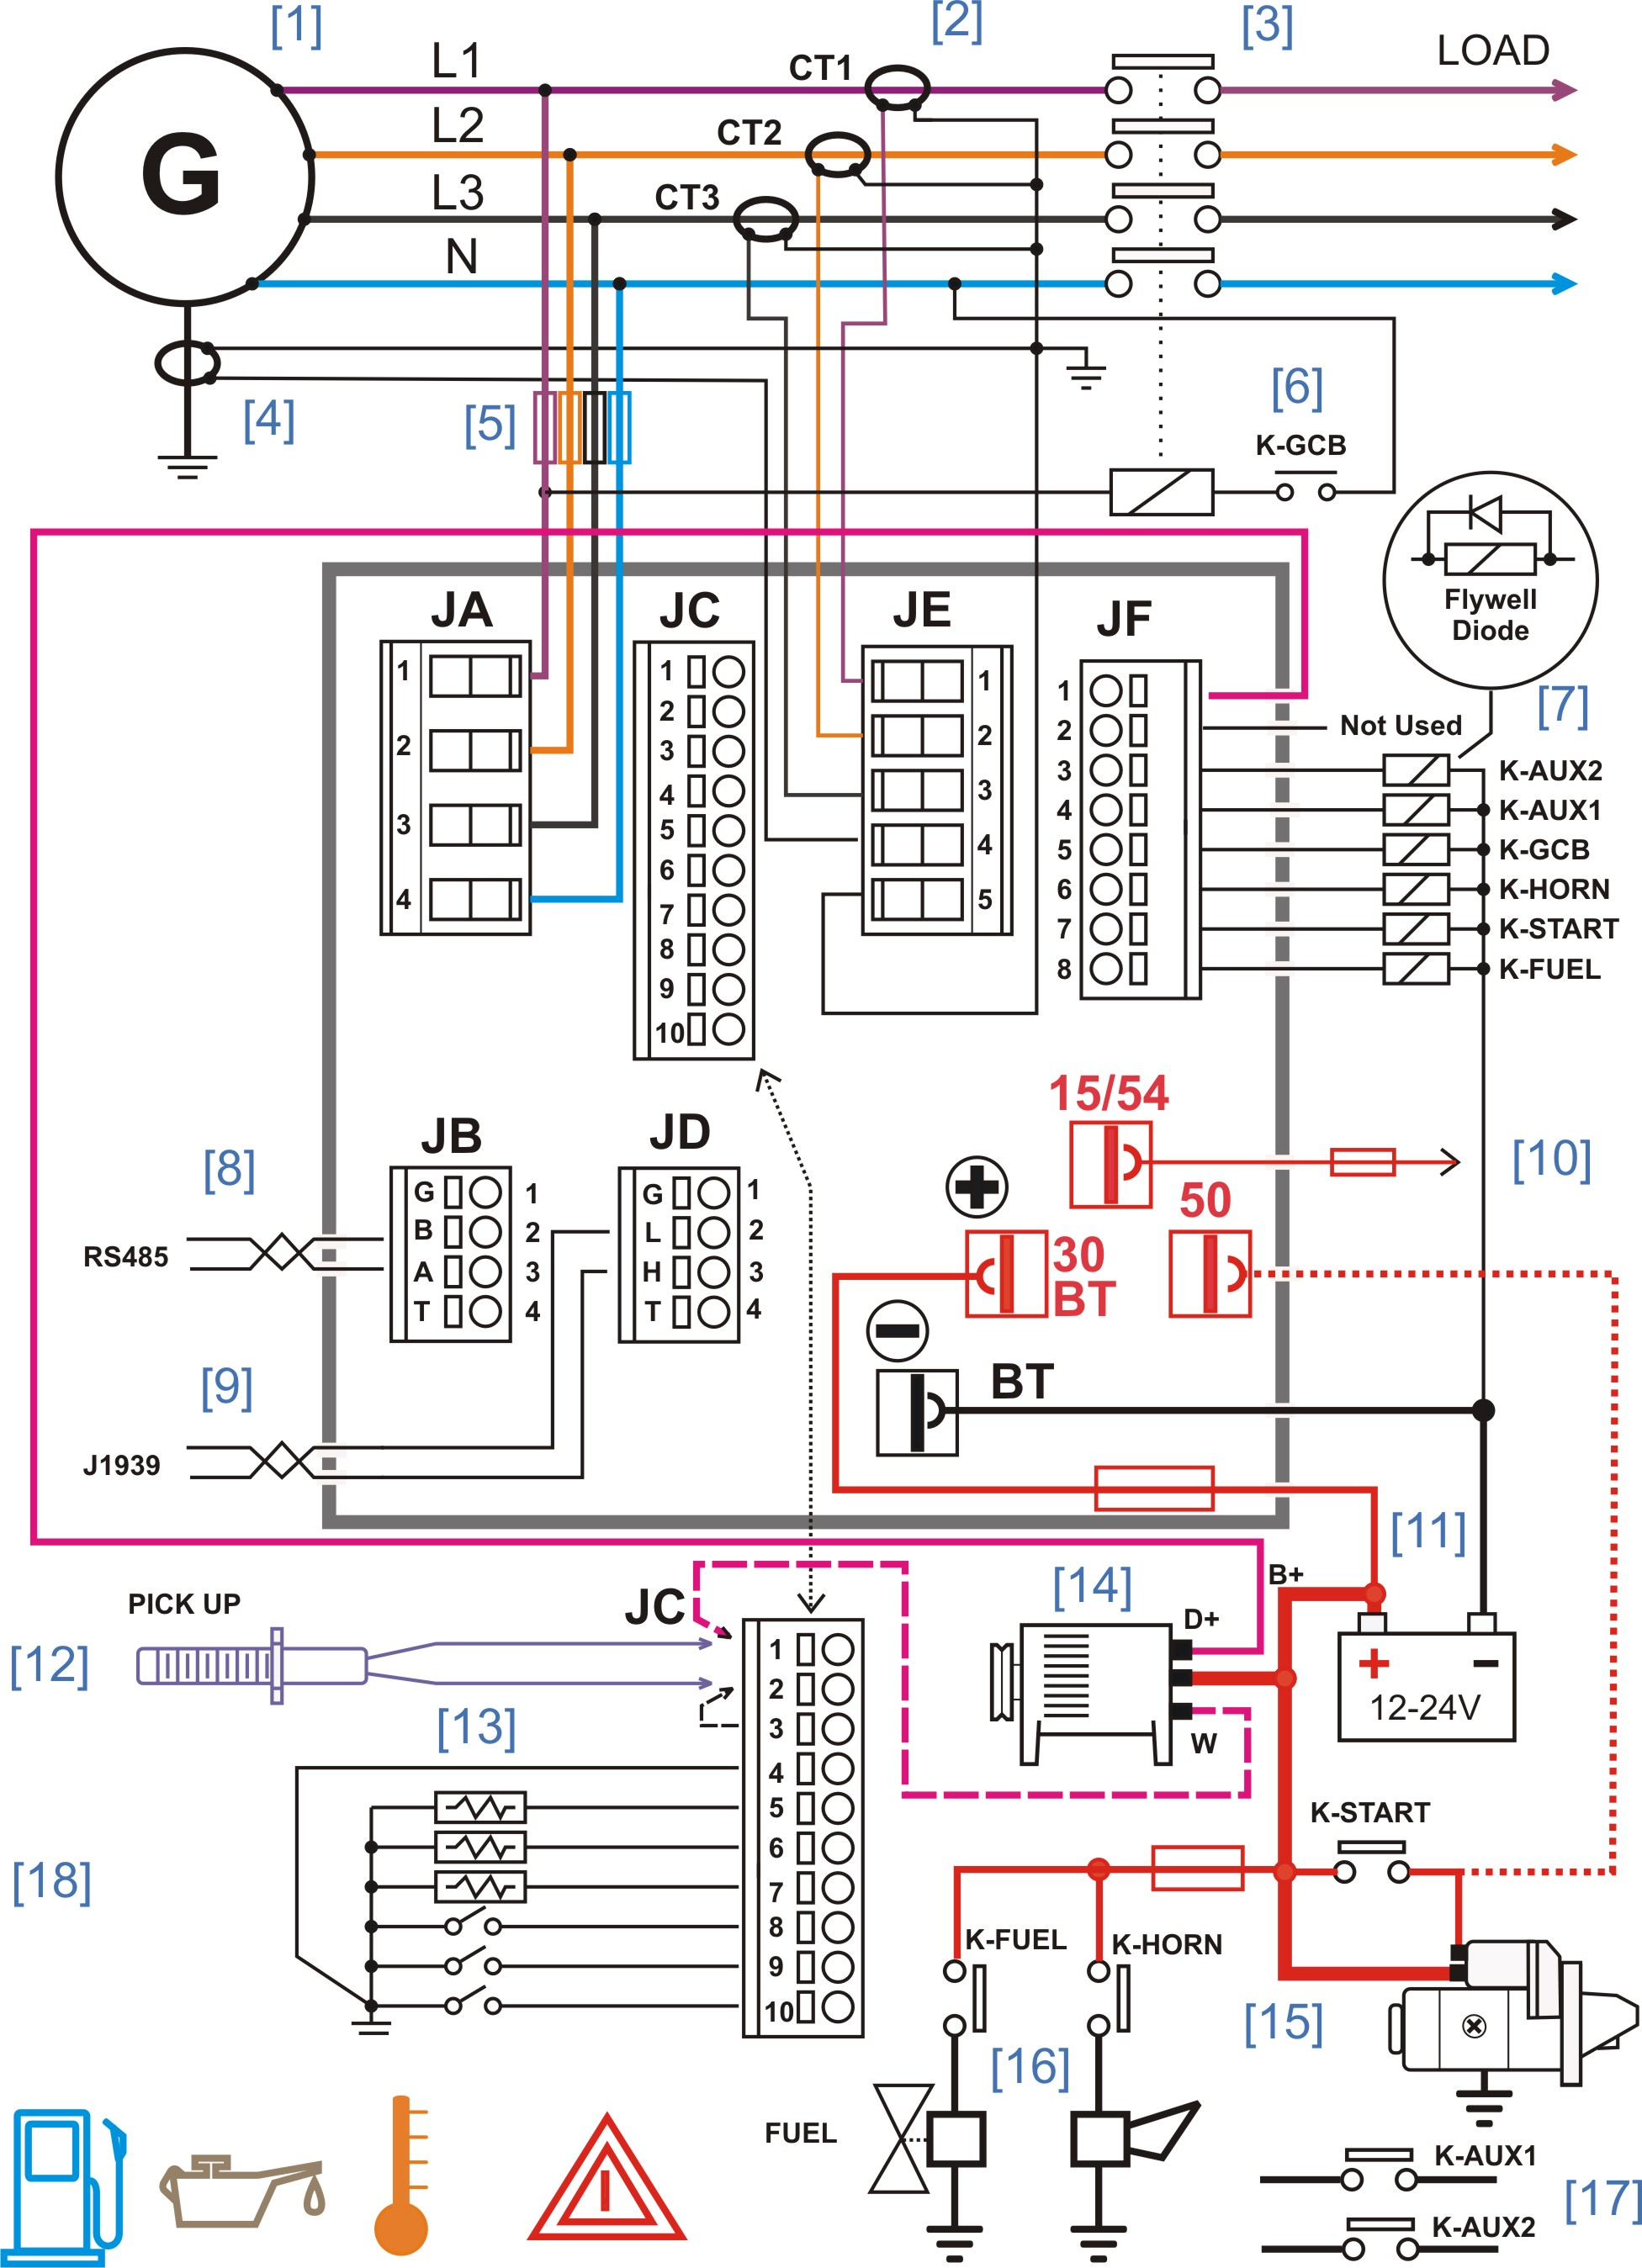 Diesel Generator Control Panel Wiring Diagram ats wiring diagram ats panel wiring diagram \u2022 wiring diagram  at mifinder.co